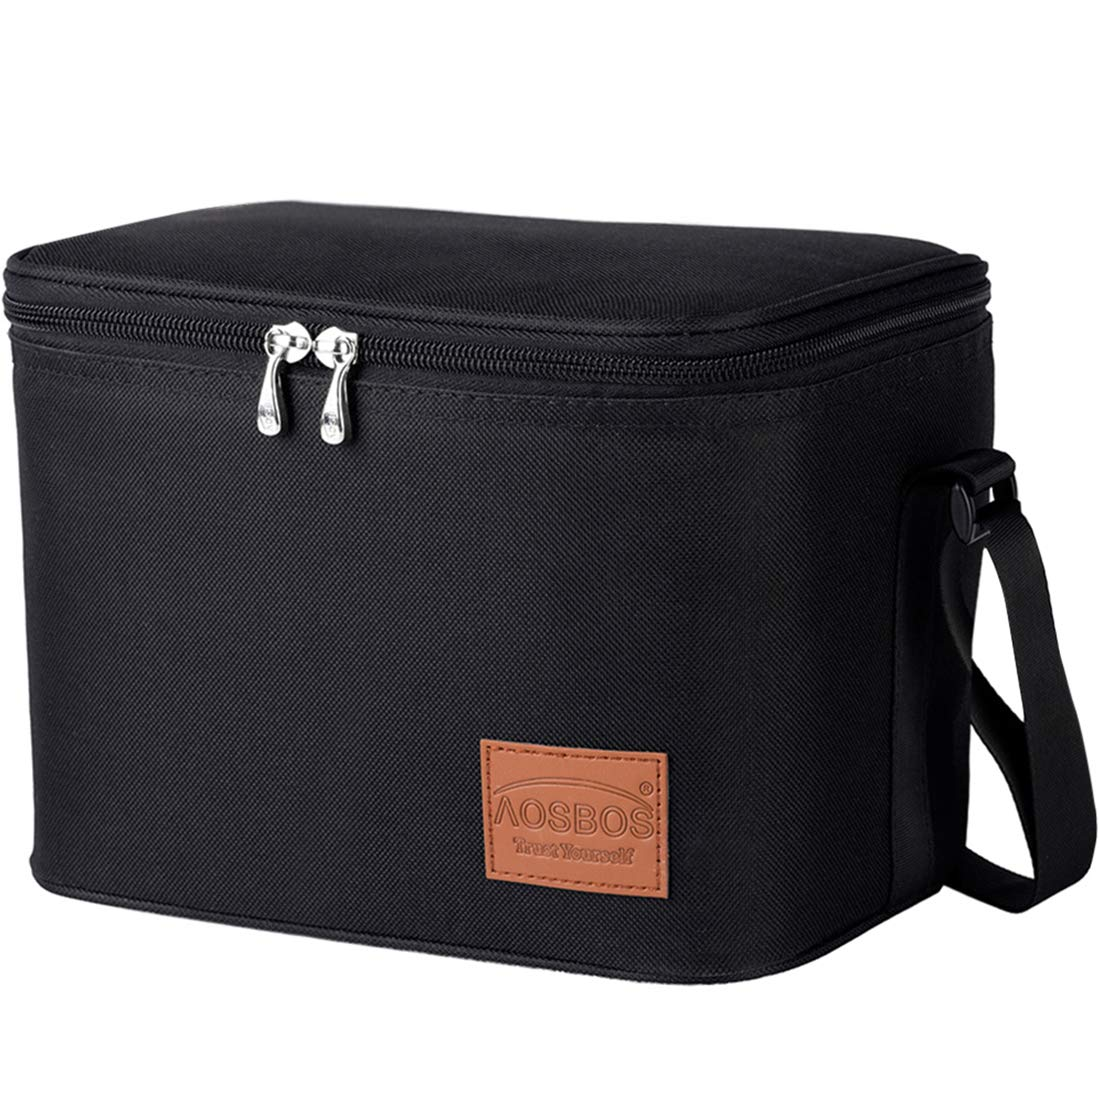 c013b37cc189 Aosbos Lunch Bag Insulated Lunch Box Reusable Cooler Tote Bag for Adults to  Work,Kids to School Black 7.5L